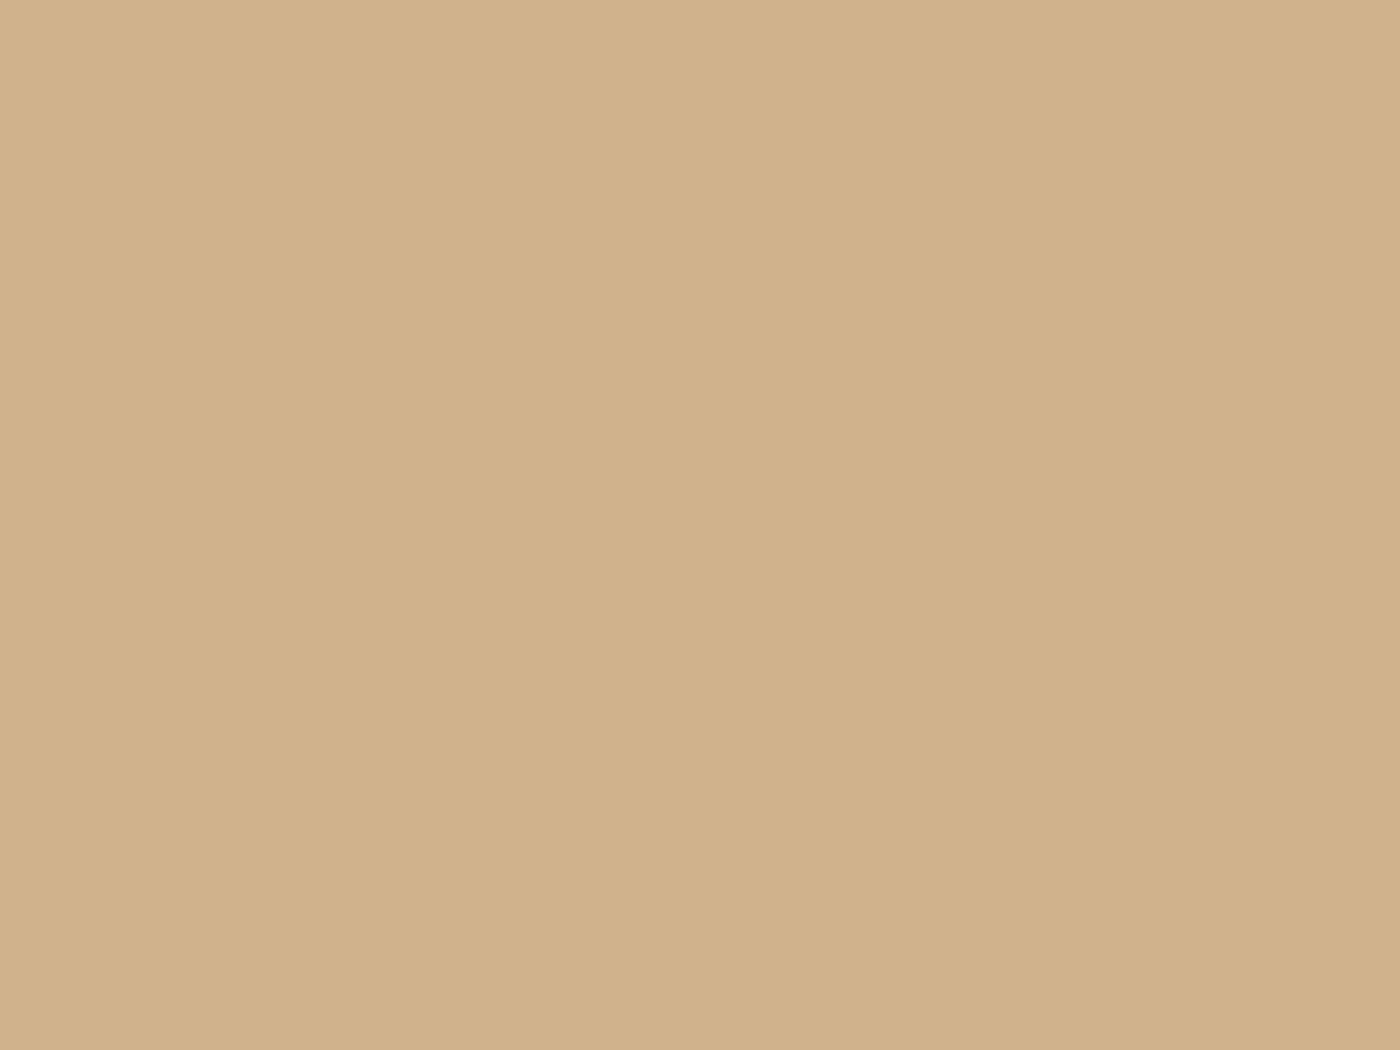 1400x1050 Tan Solid Color Background